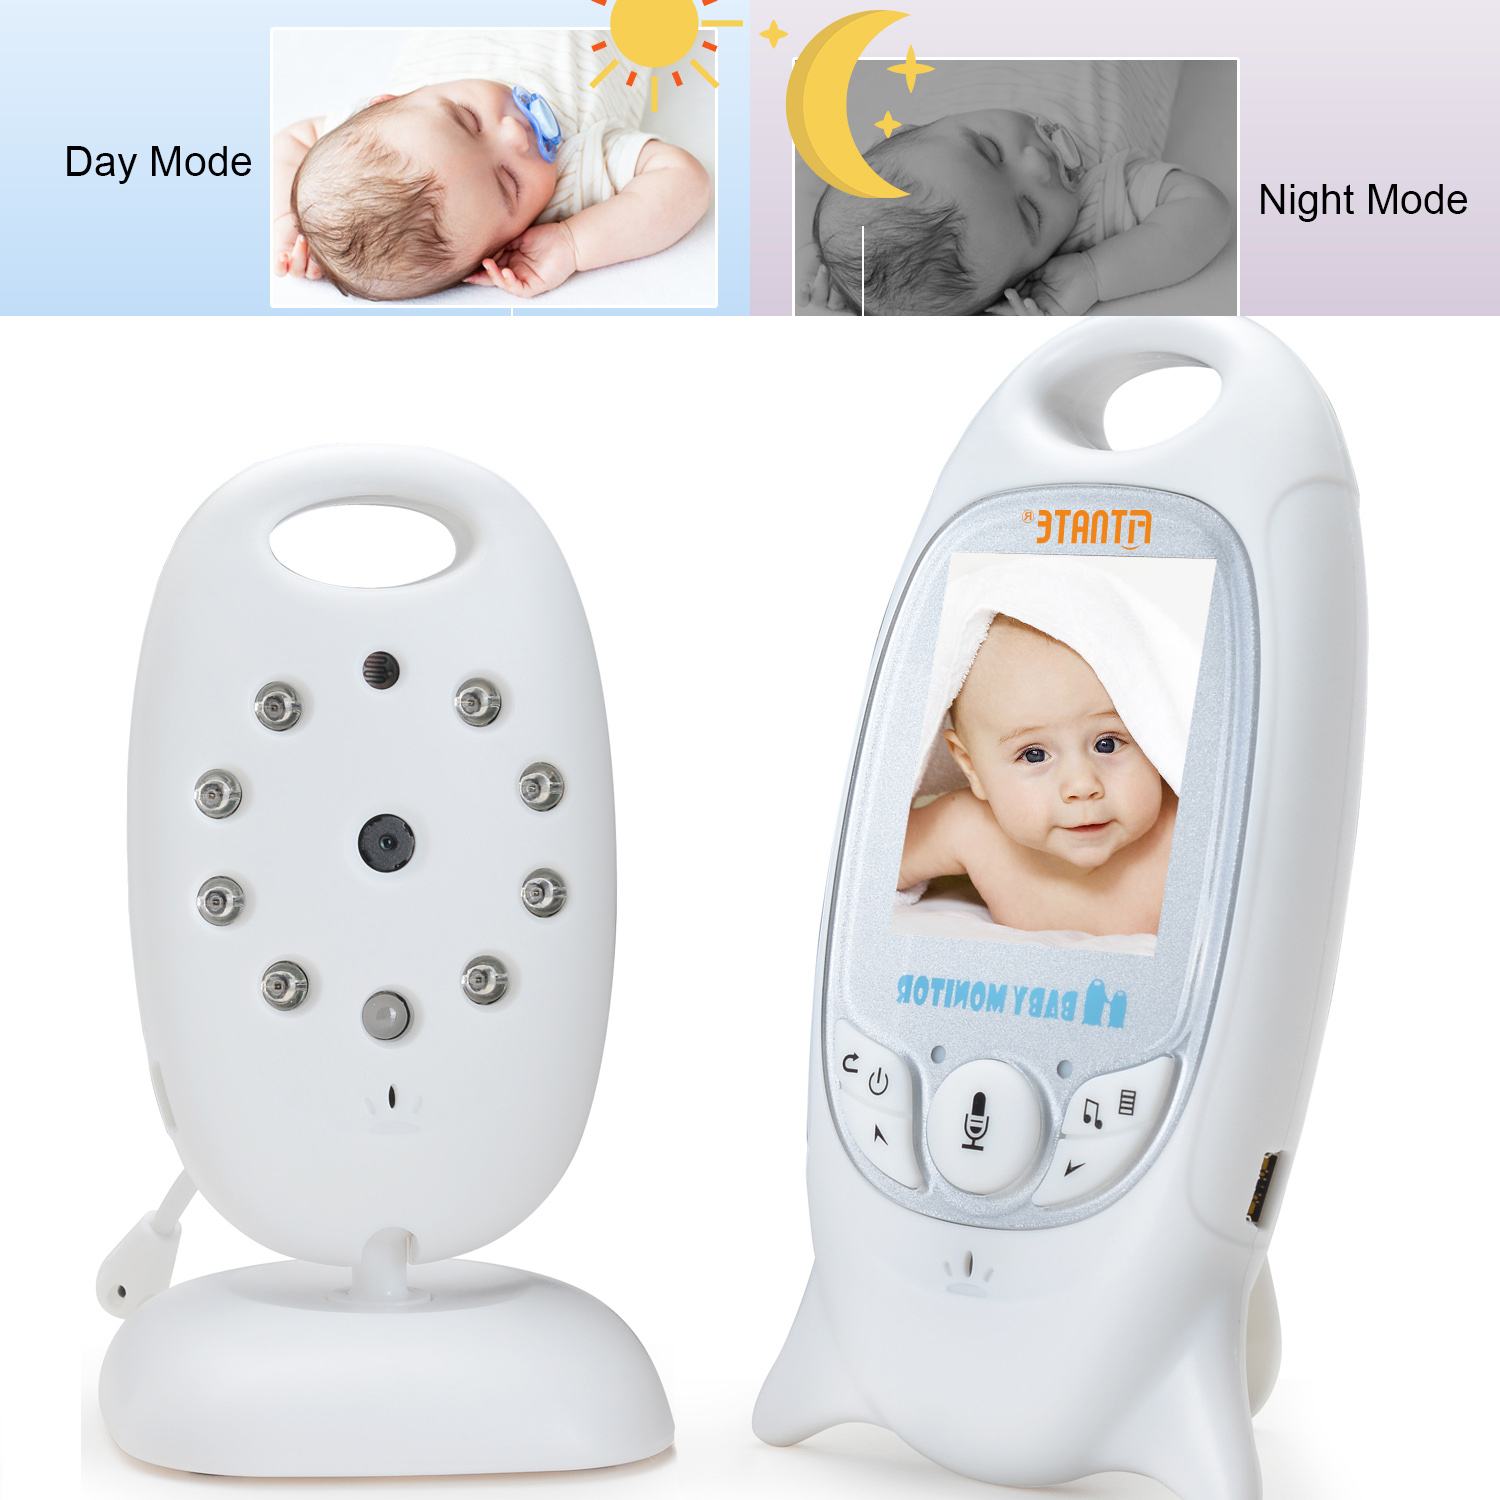 Baby Infant Wireless Video Digital Camera Monitor Night Vision 853ft Signal Range Stable Connection